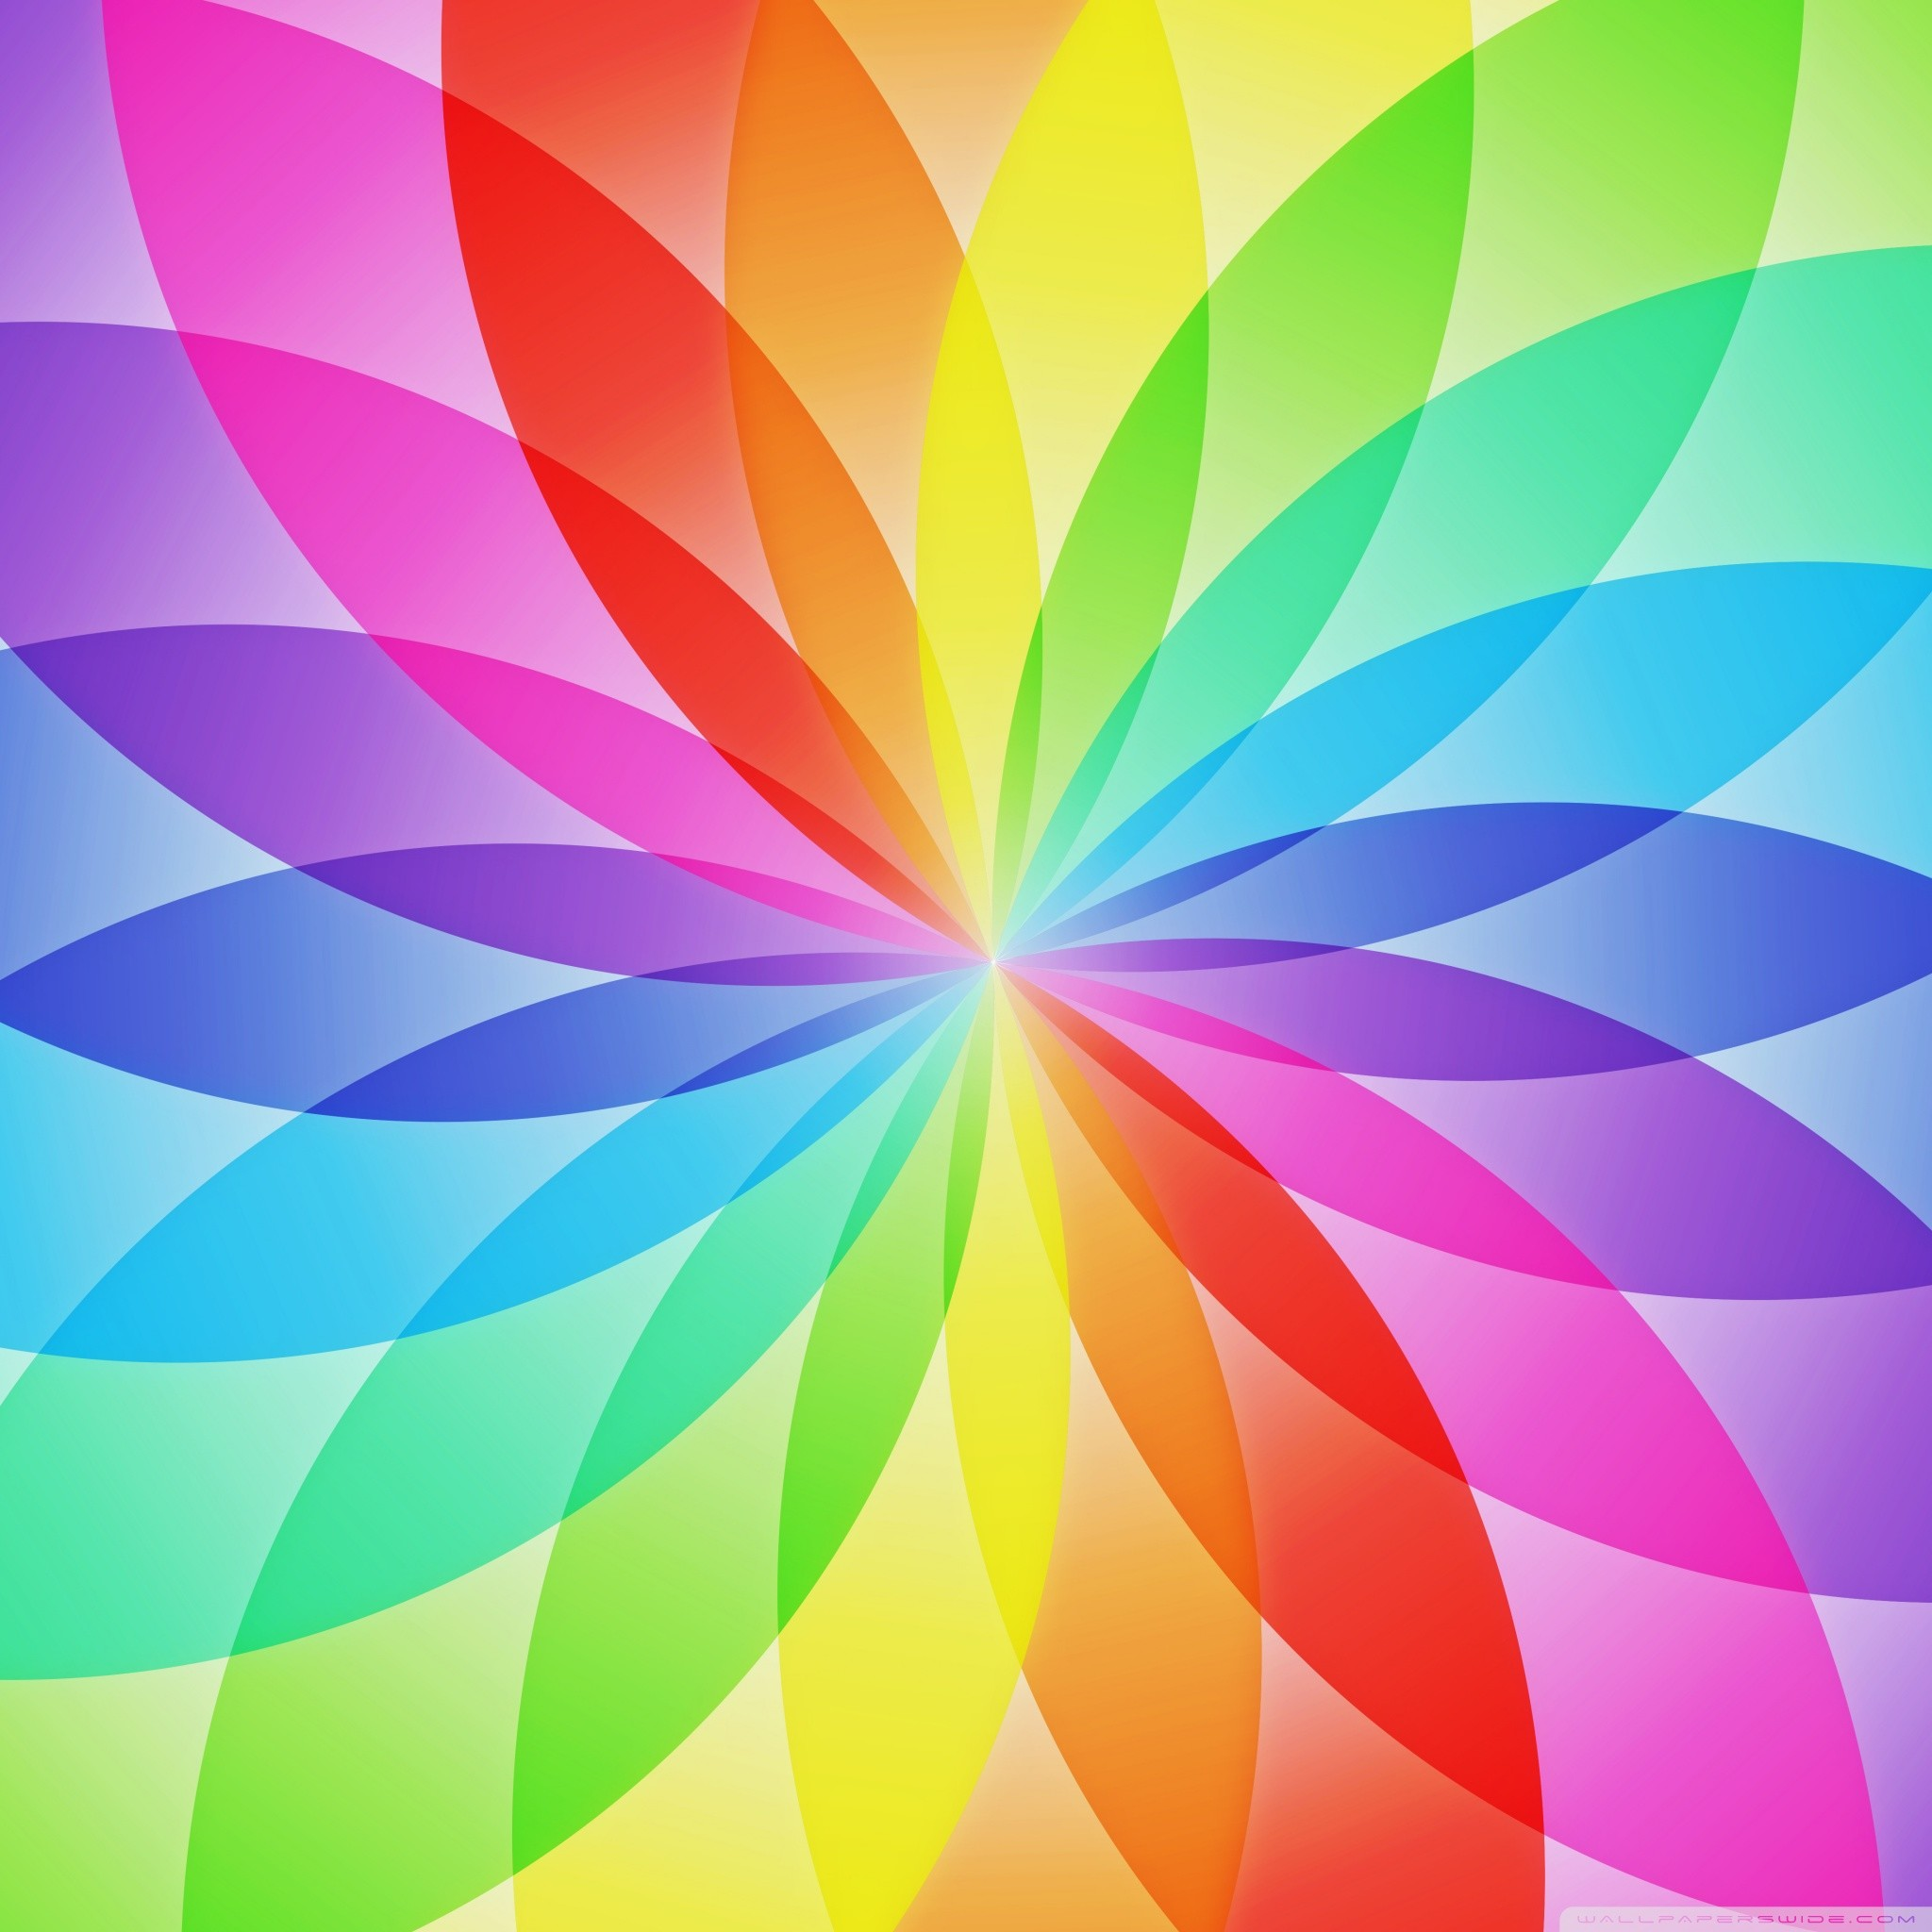 Res: 2048x2048, Rainbow Wallpapers 25 - 2048 X 2048